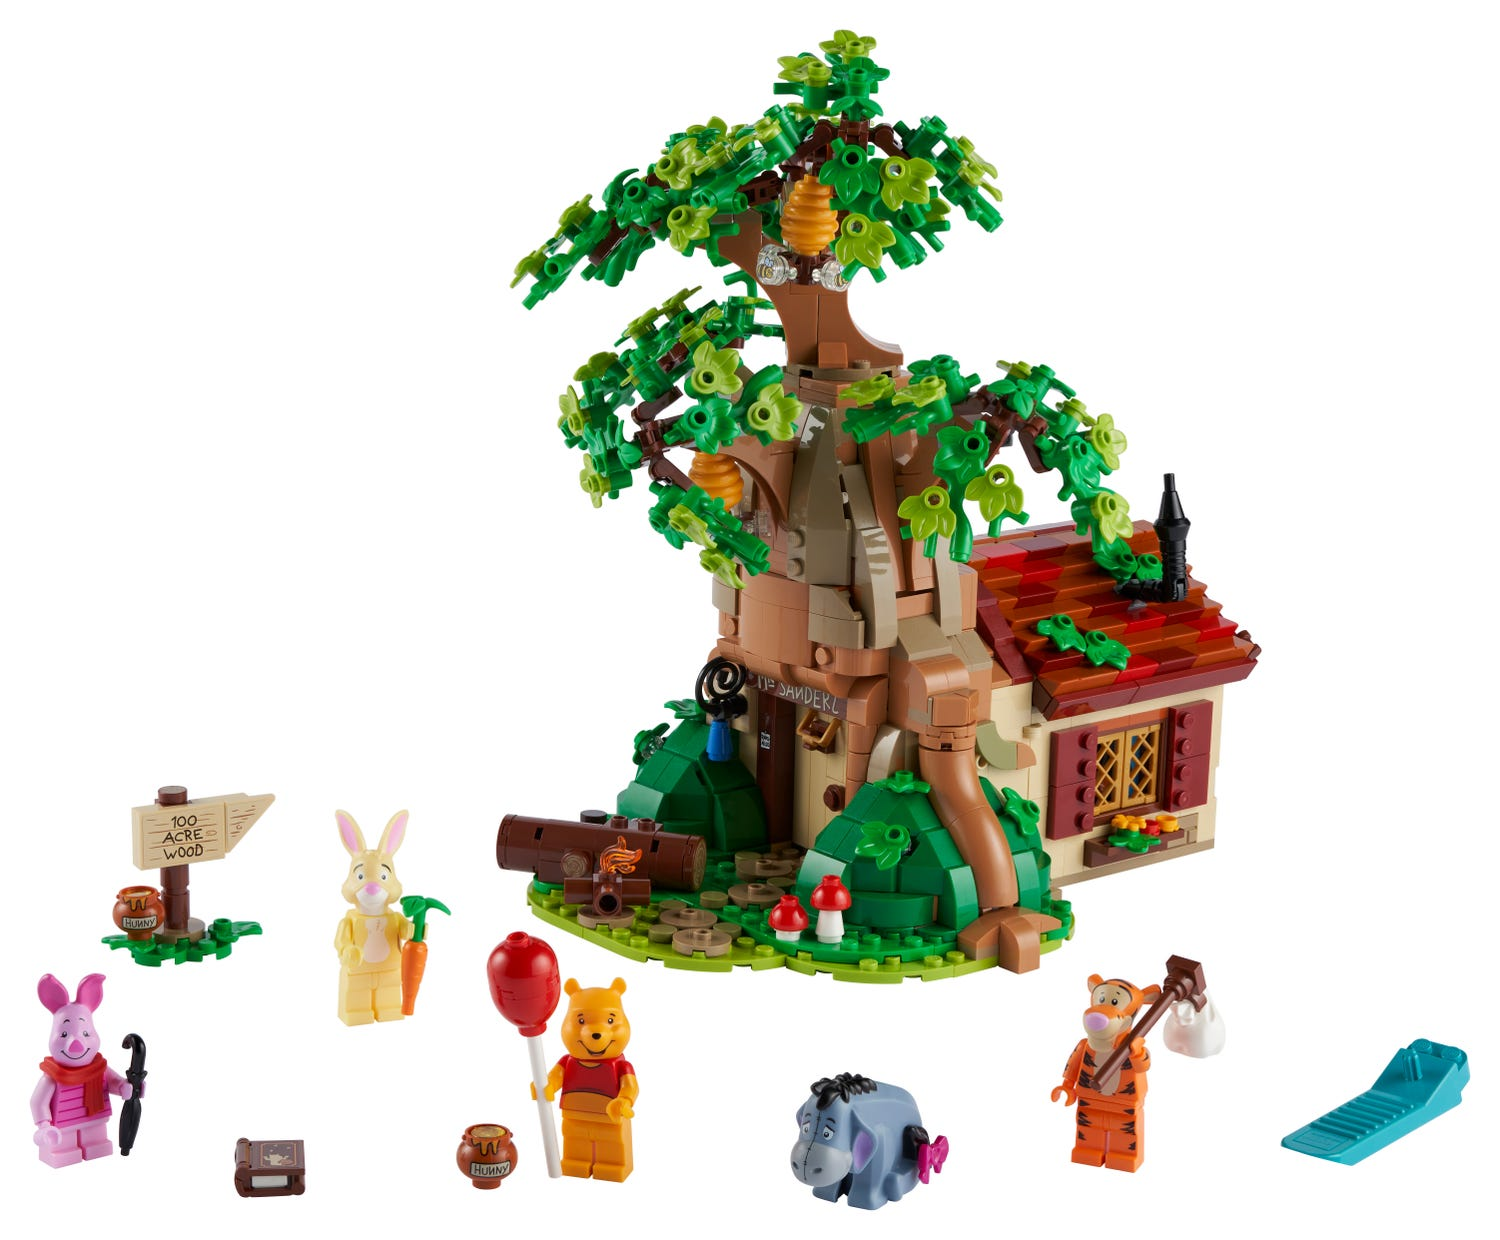 Winnie the Pooh 21326 | Ideas | Buy online at the Official LEGO® Shop US